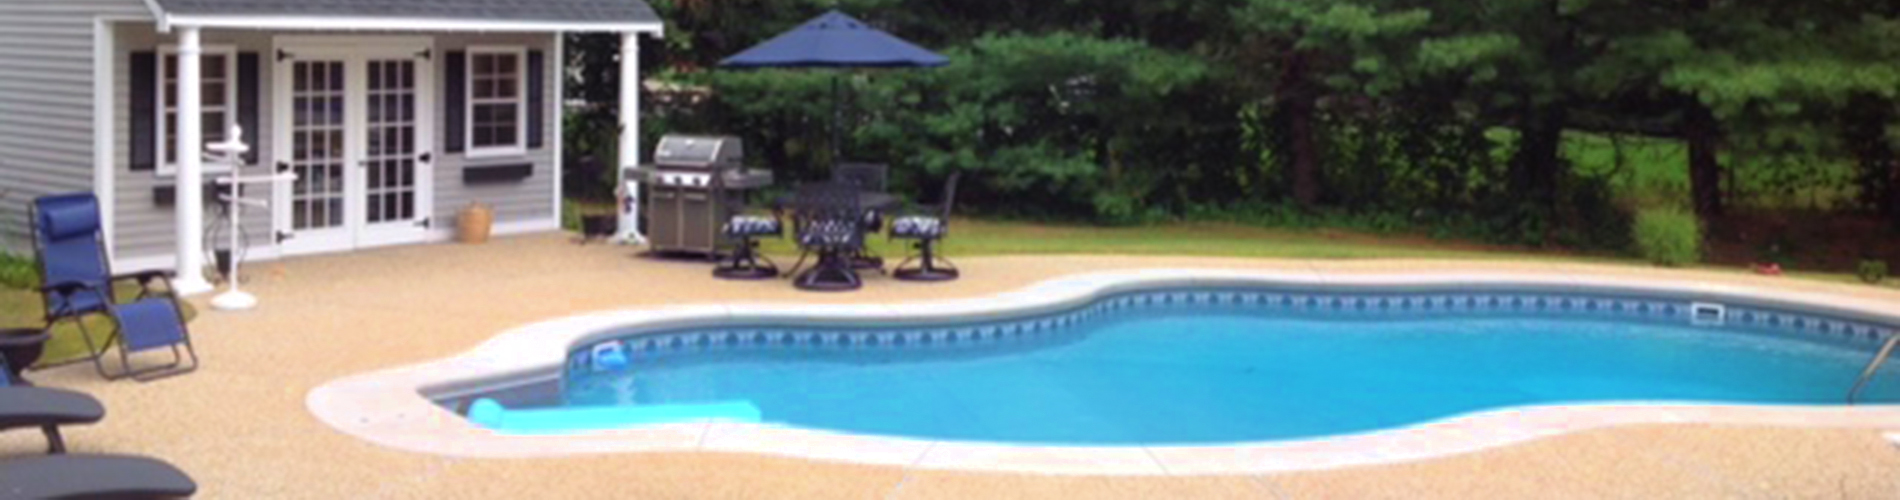 Quality Pool Services For 13 Years…